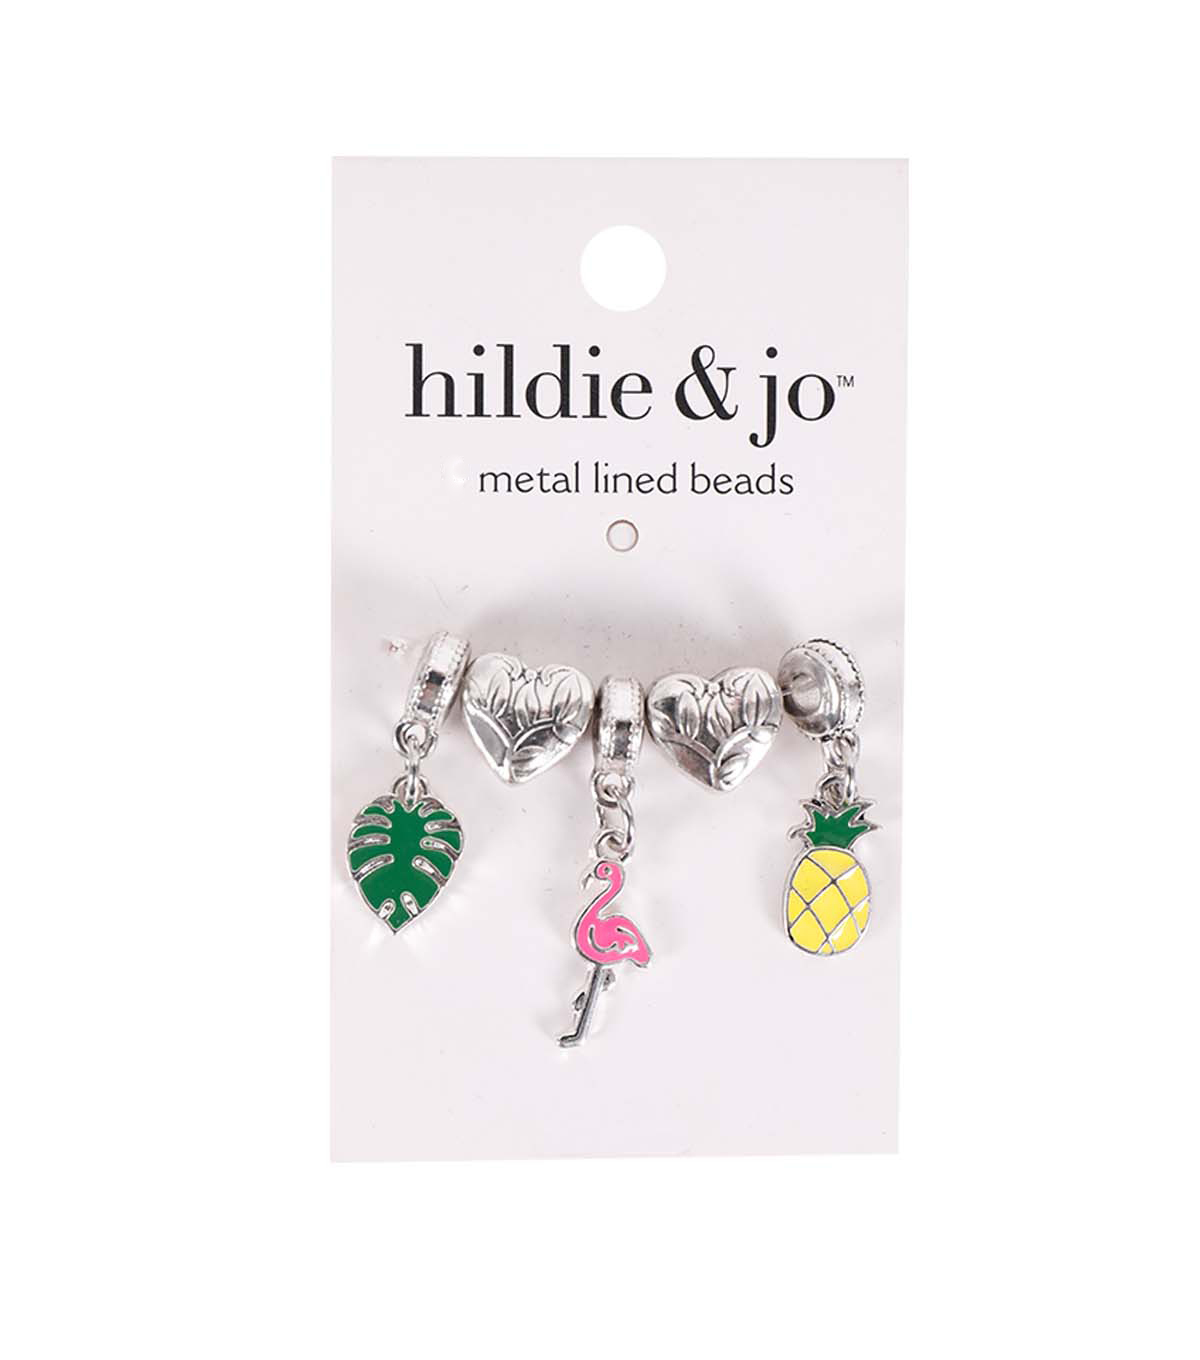 hildie & jo 5 pk Metal Lined Beads-Tropic